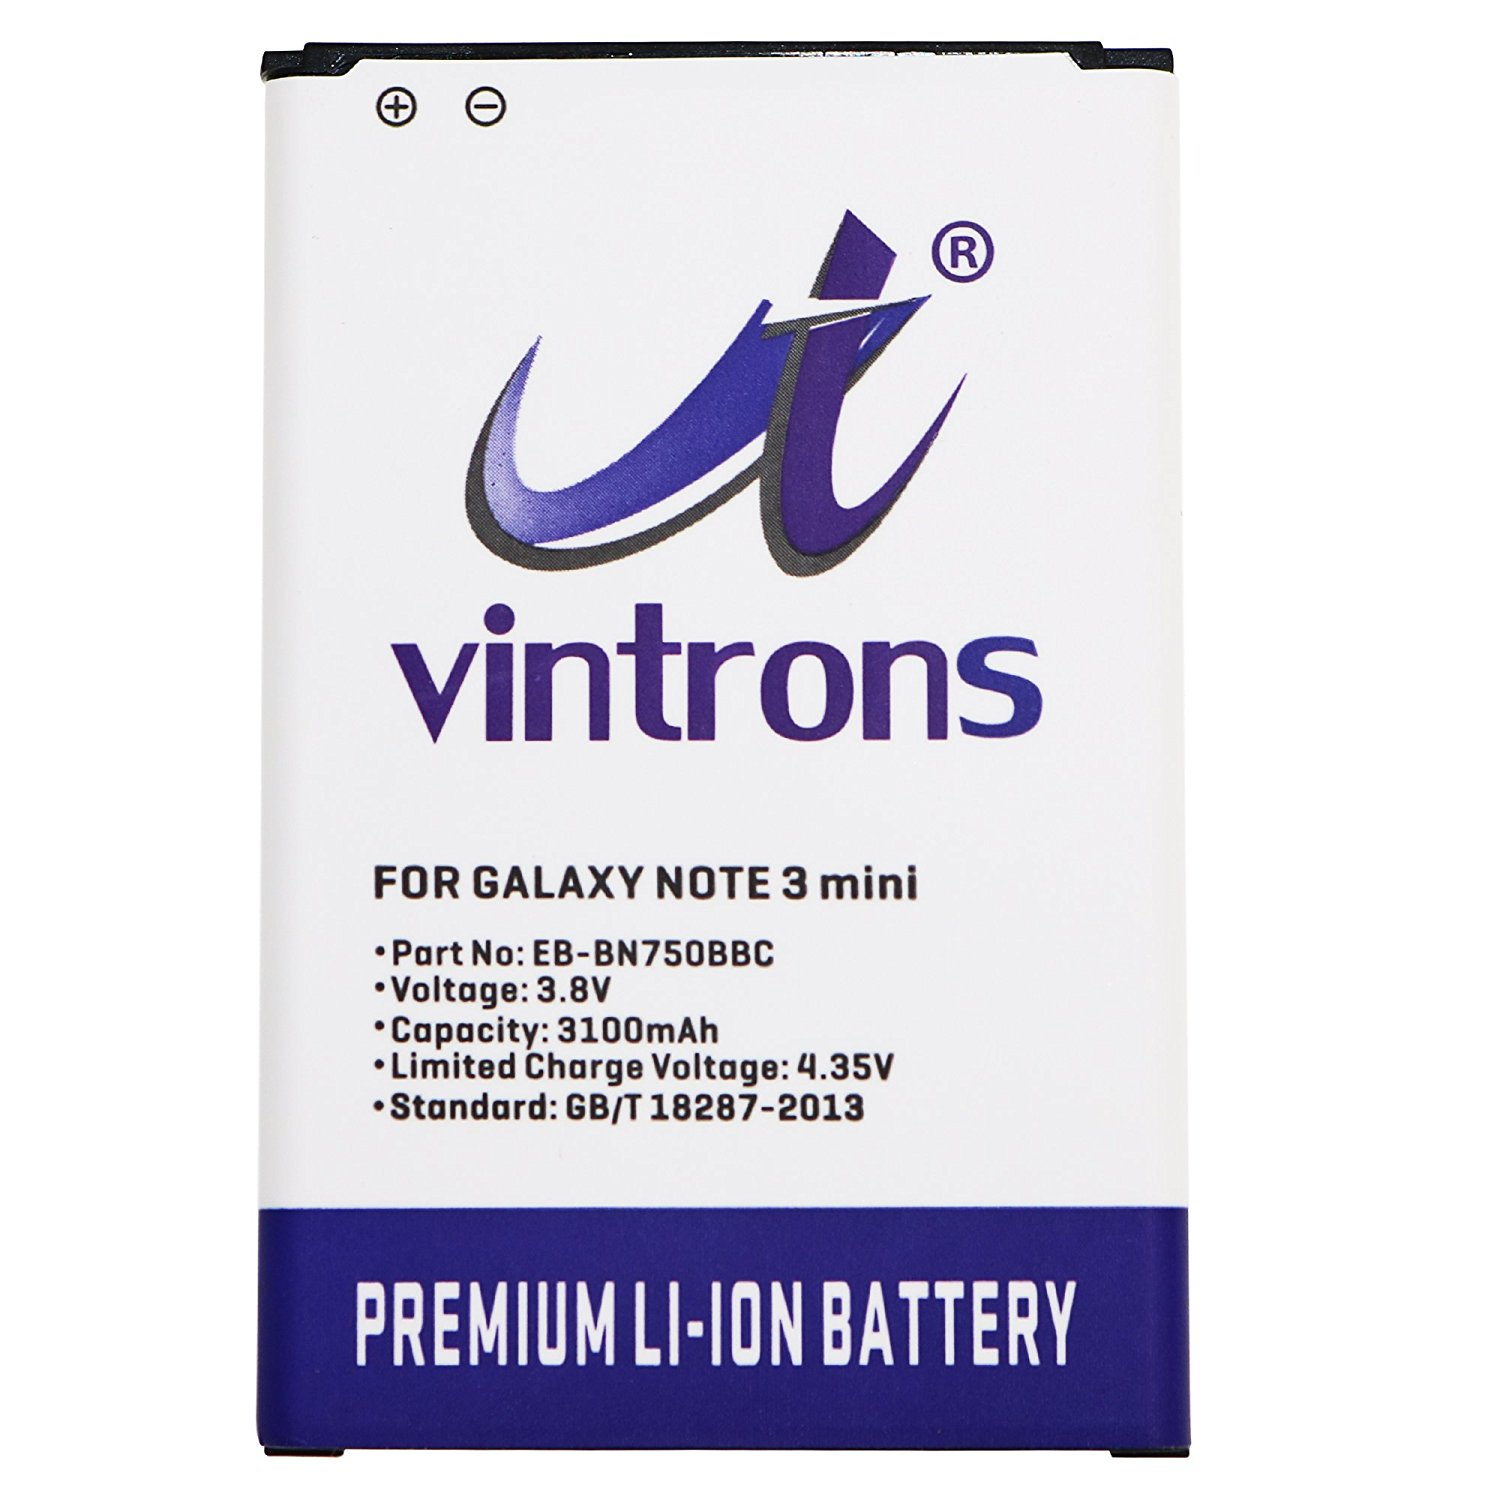 VINTRONS 3100mAh Replacement Battery EB-BN750BBC For Galaxy Note 3 mini